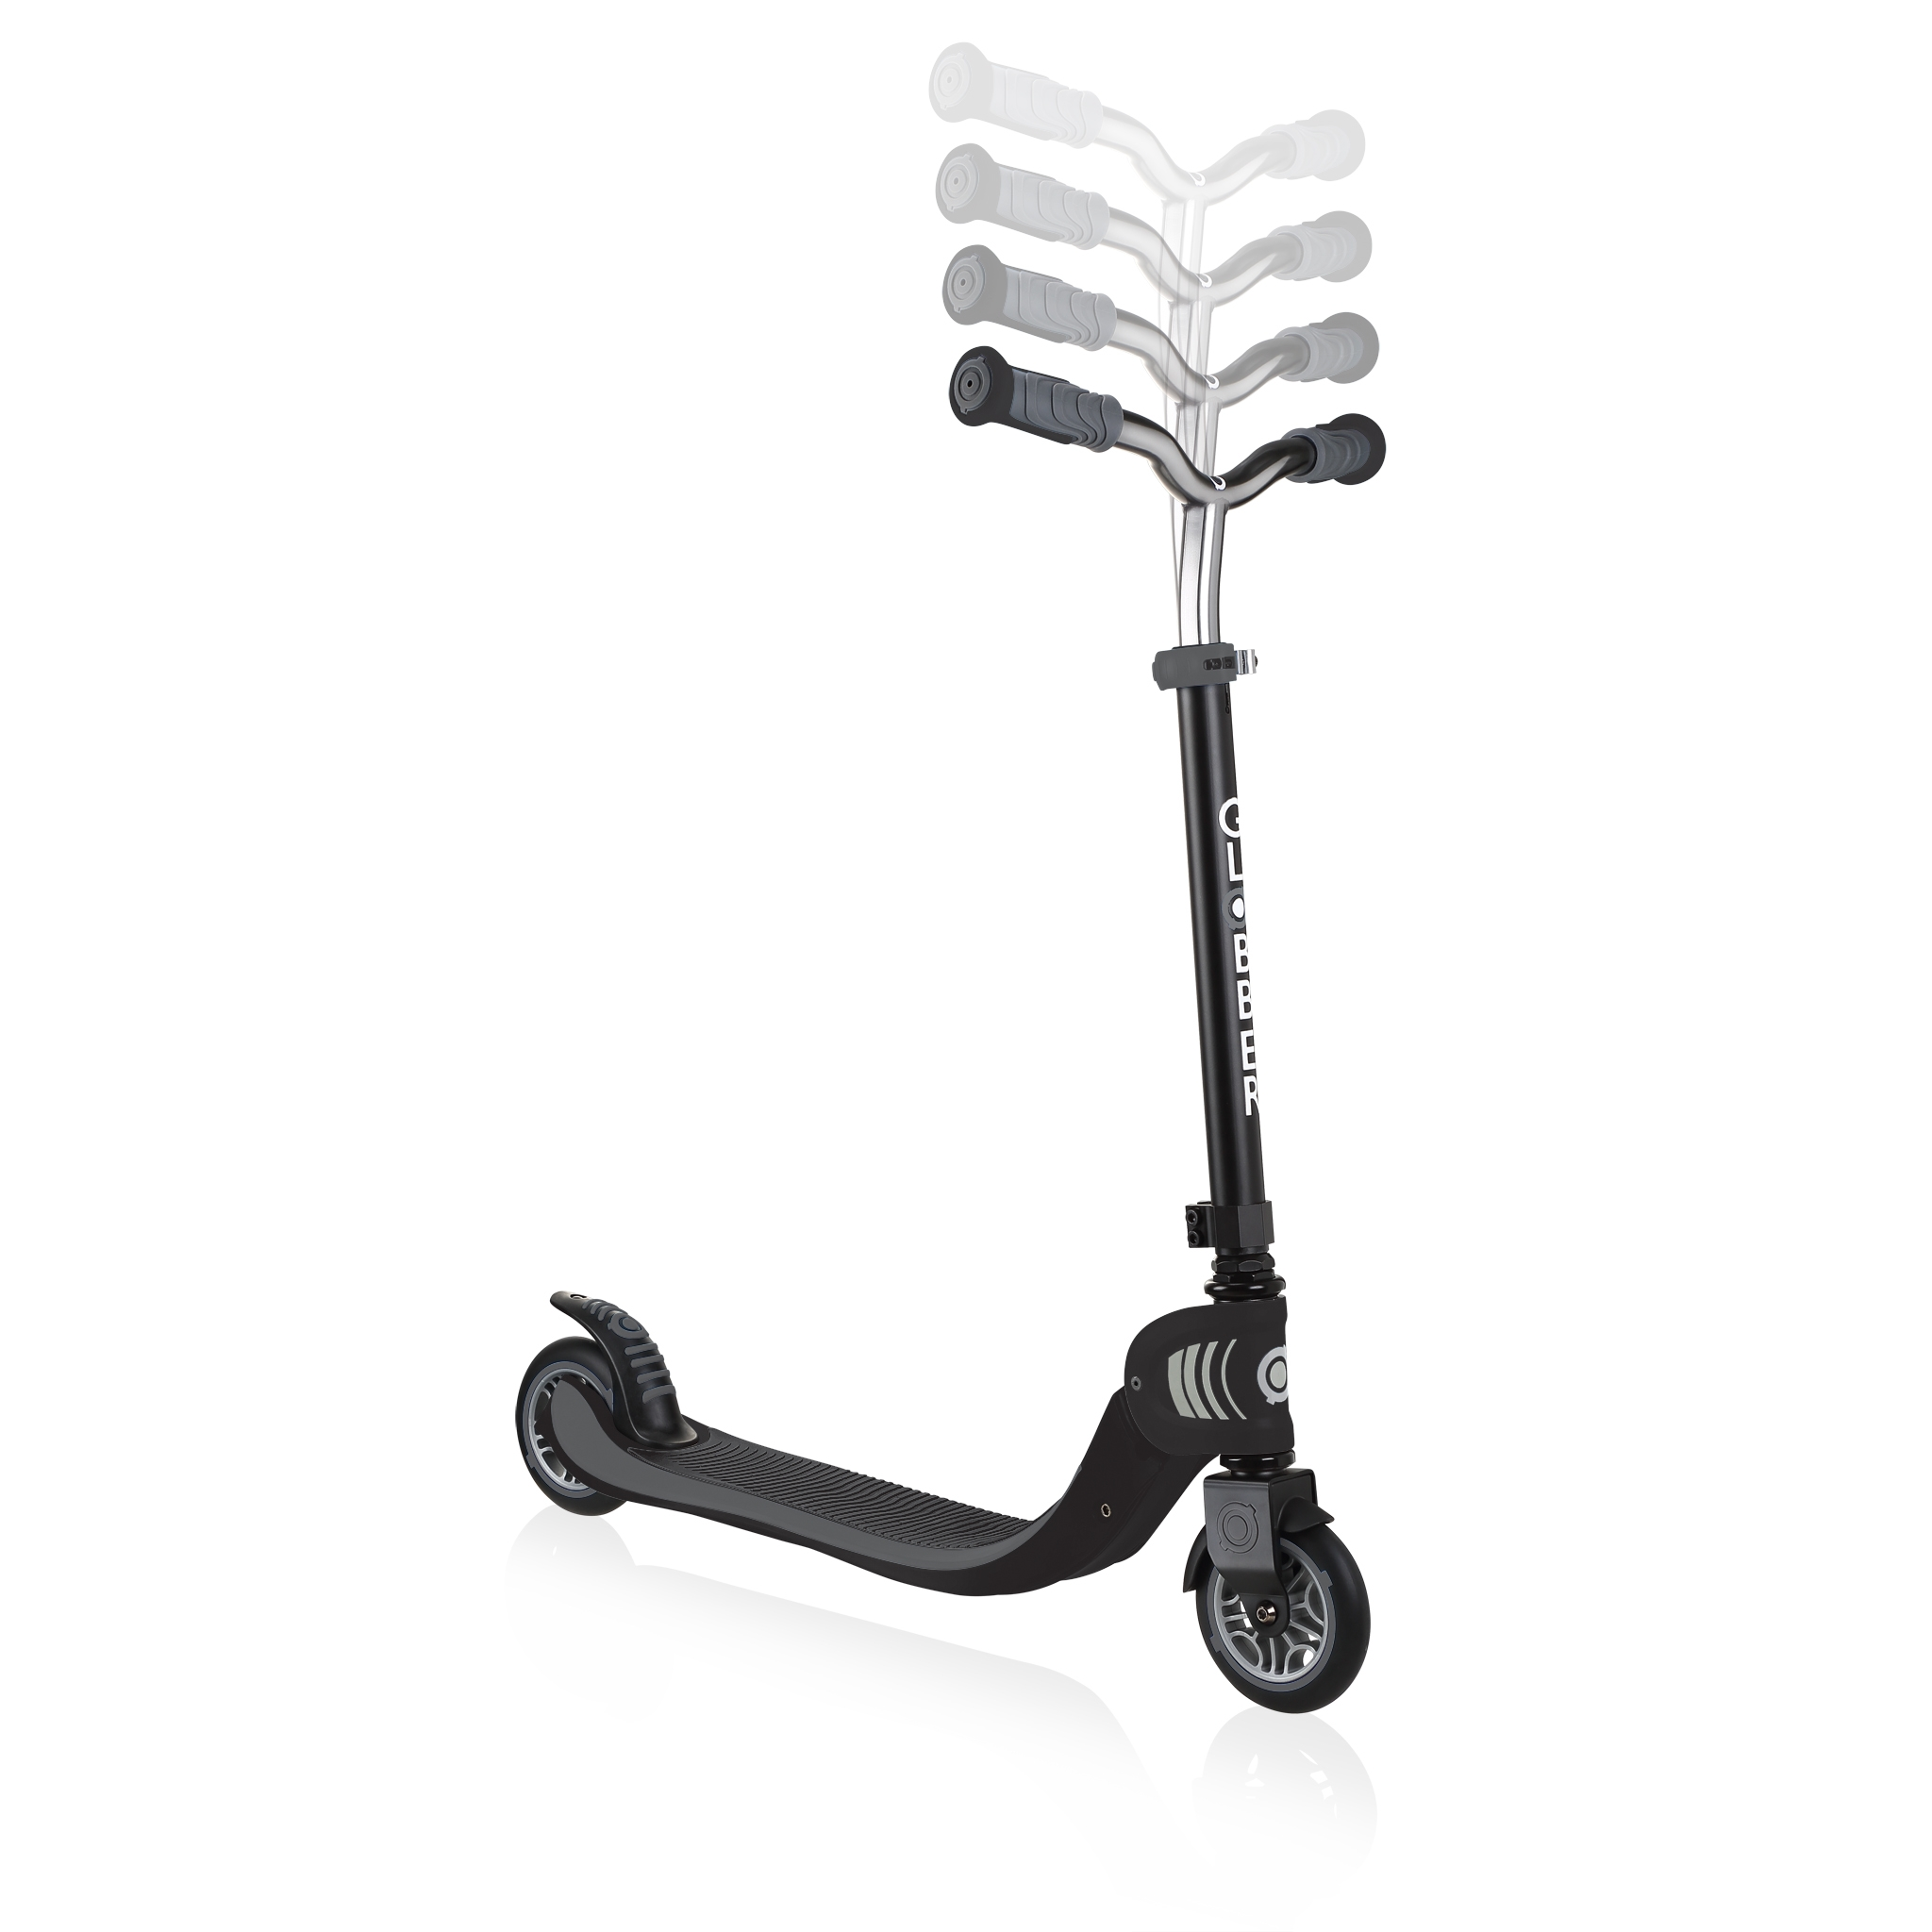 FLOW-FOLDABLE-125-2-wheel-scooter-for-kids-with-adjustable-t-bar-black